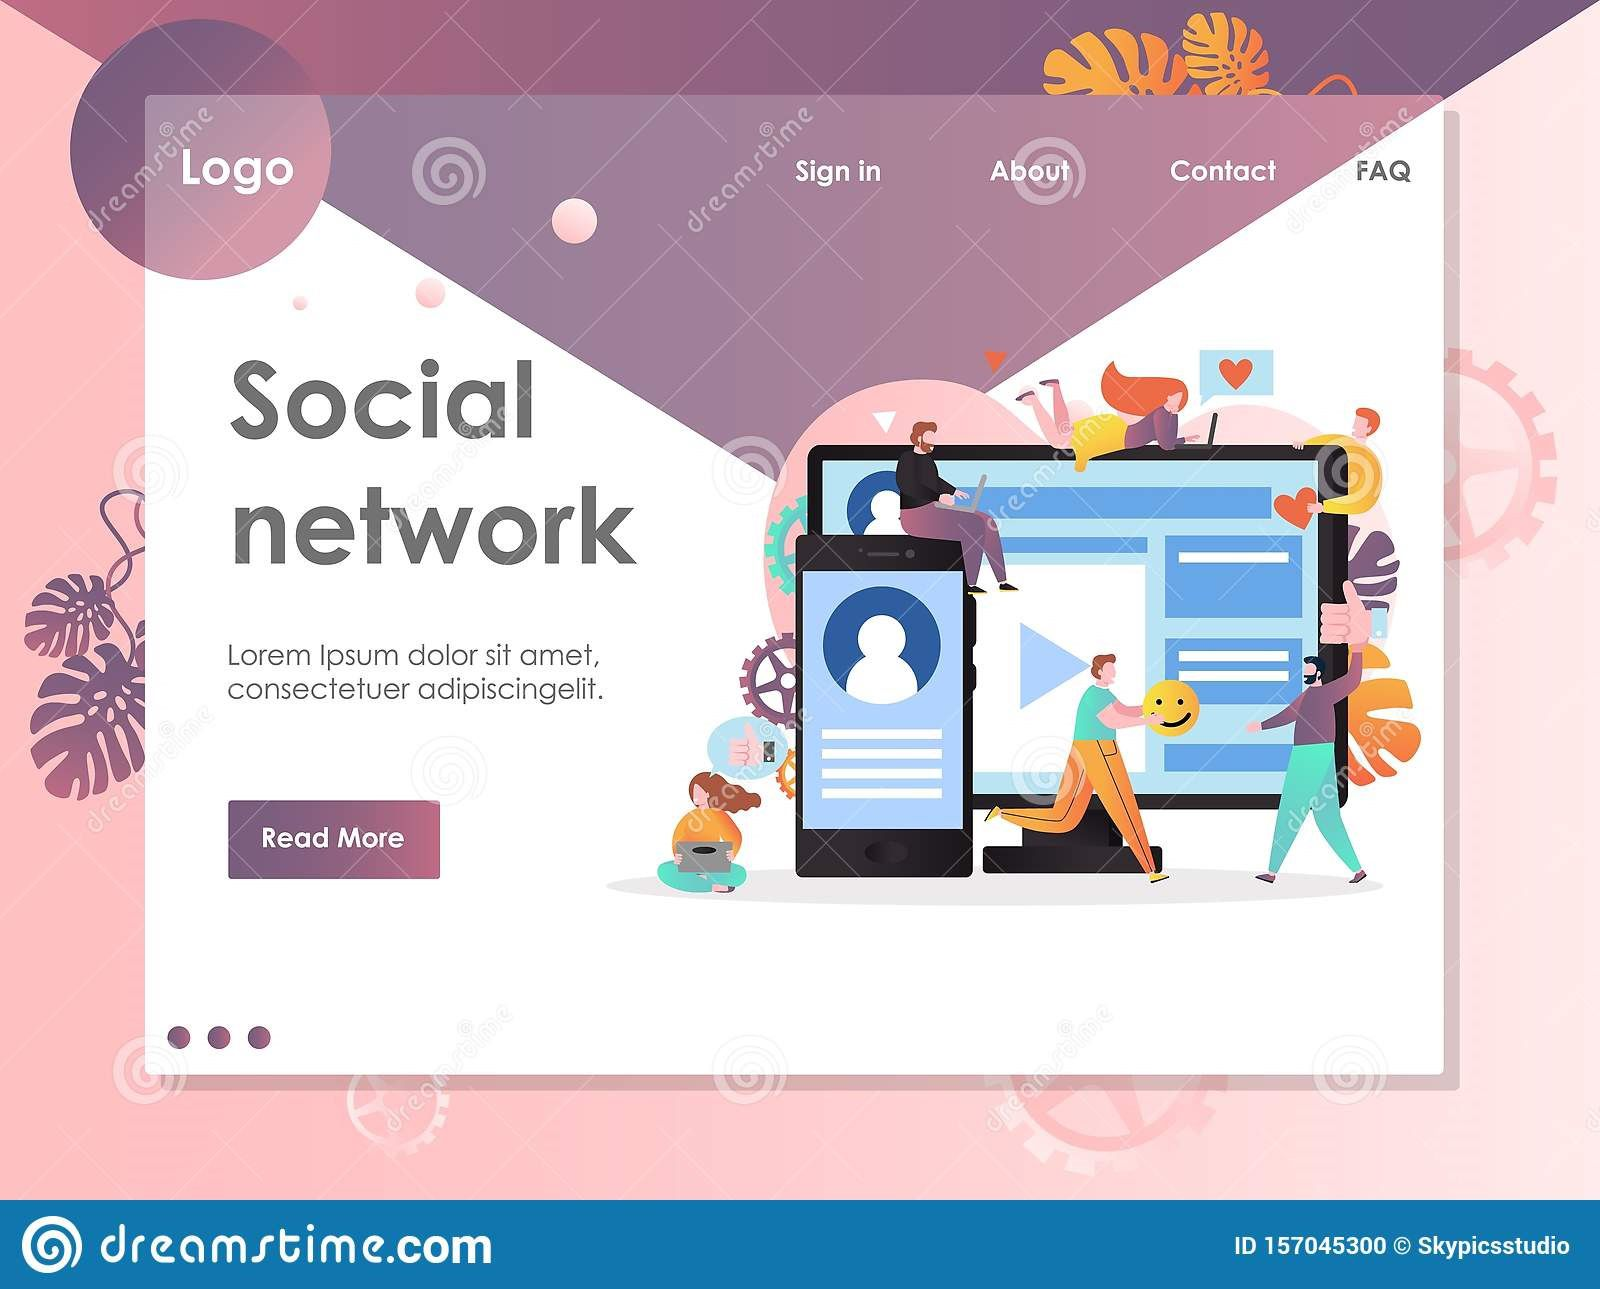 007 Unforgettable Social Media Web Template Highest Clarity  Templates Best Website Free DownloadFull